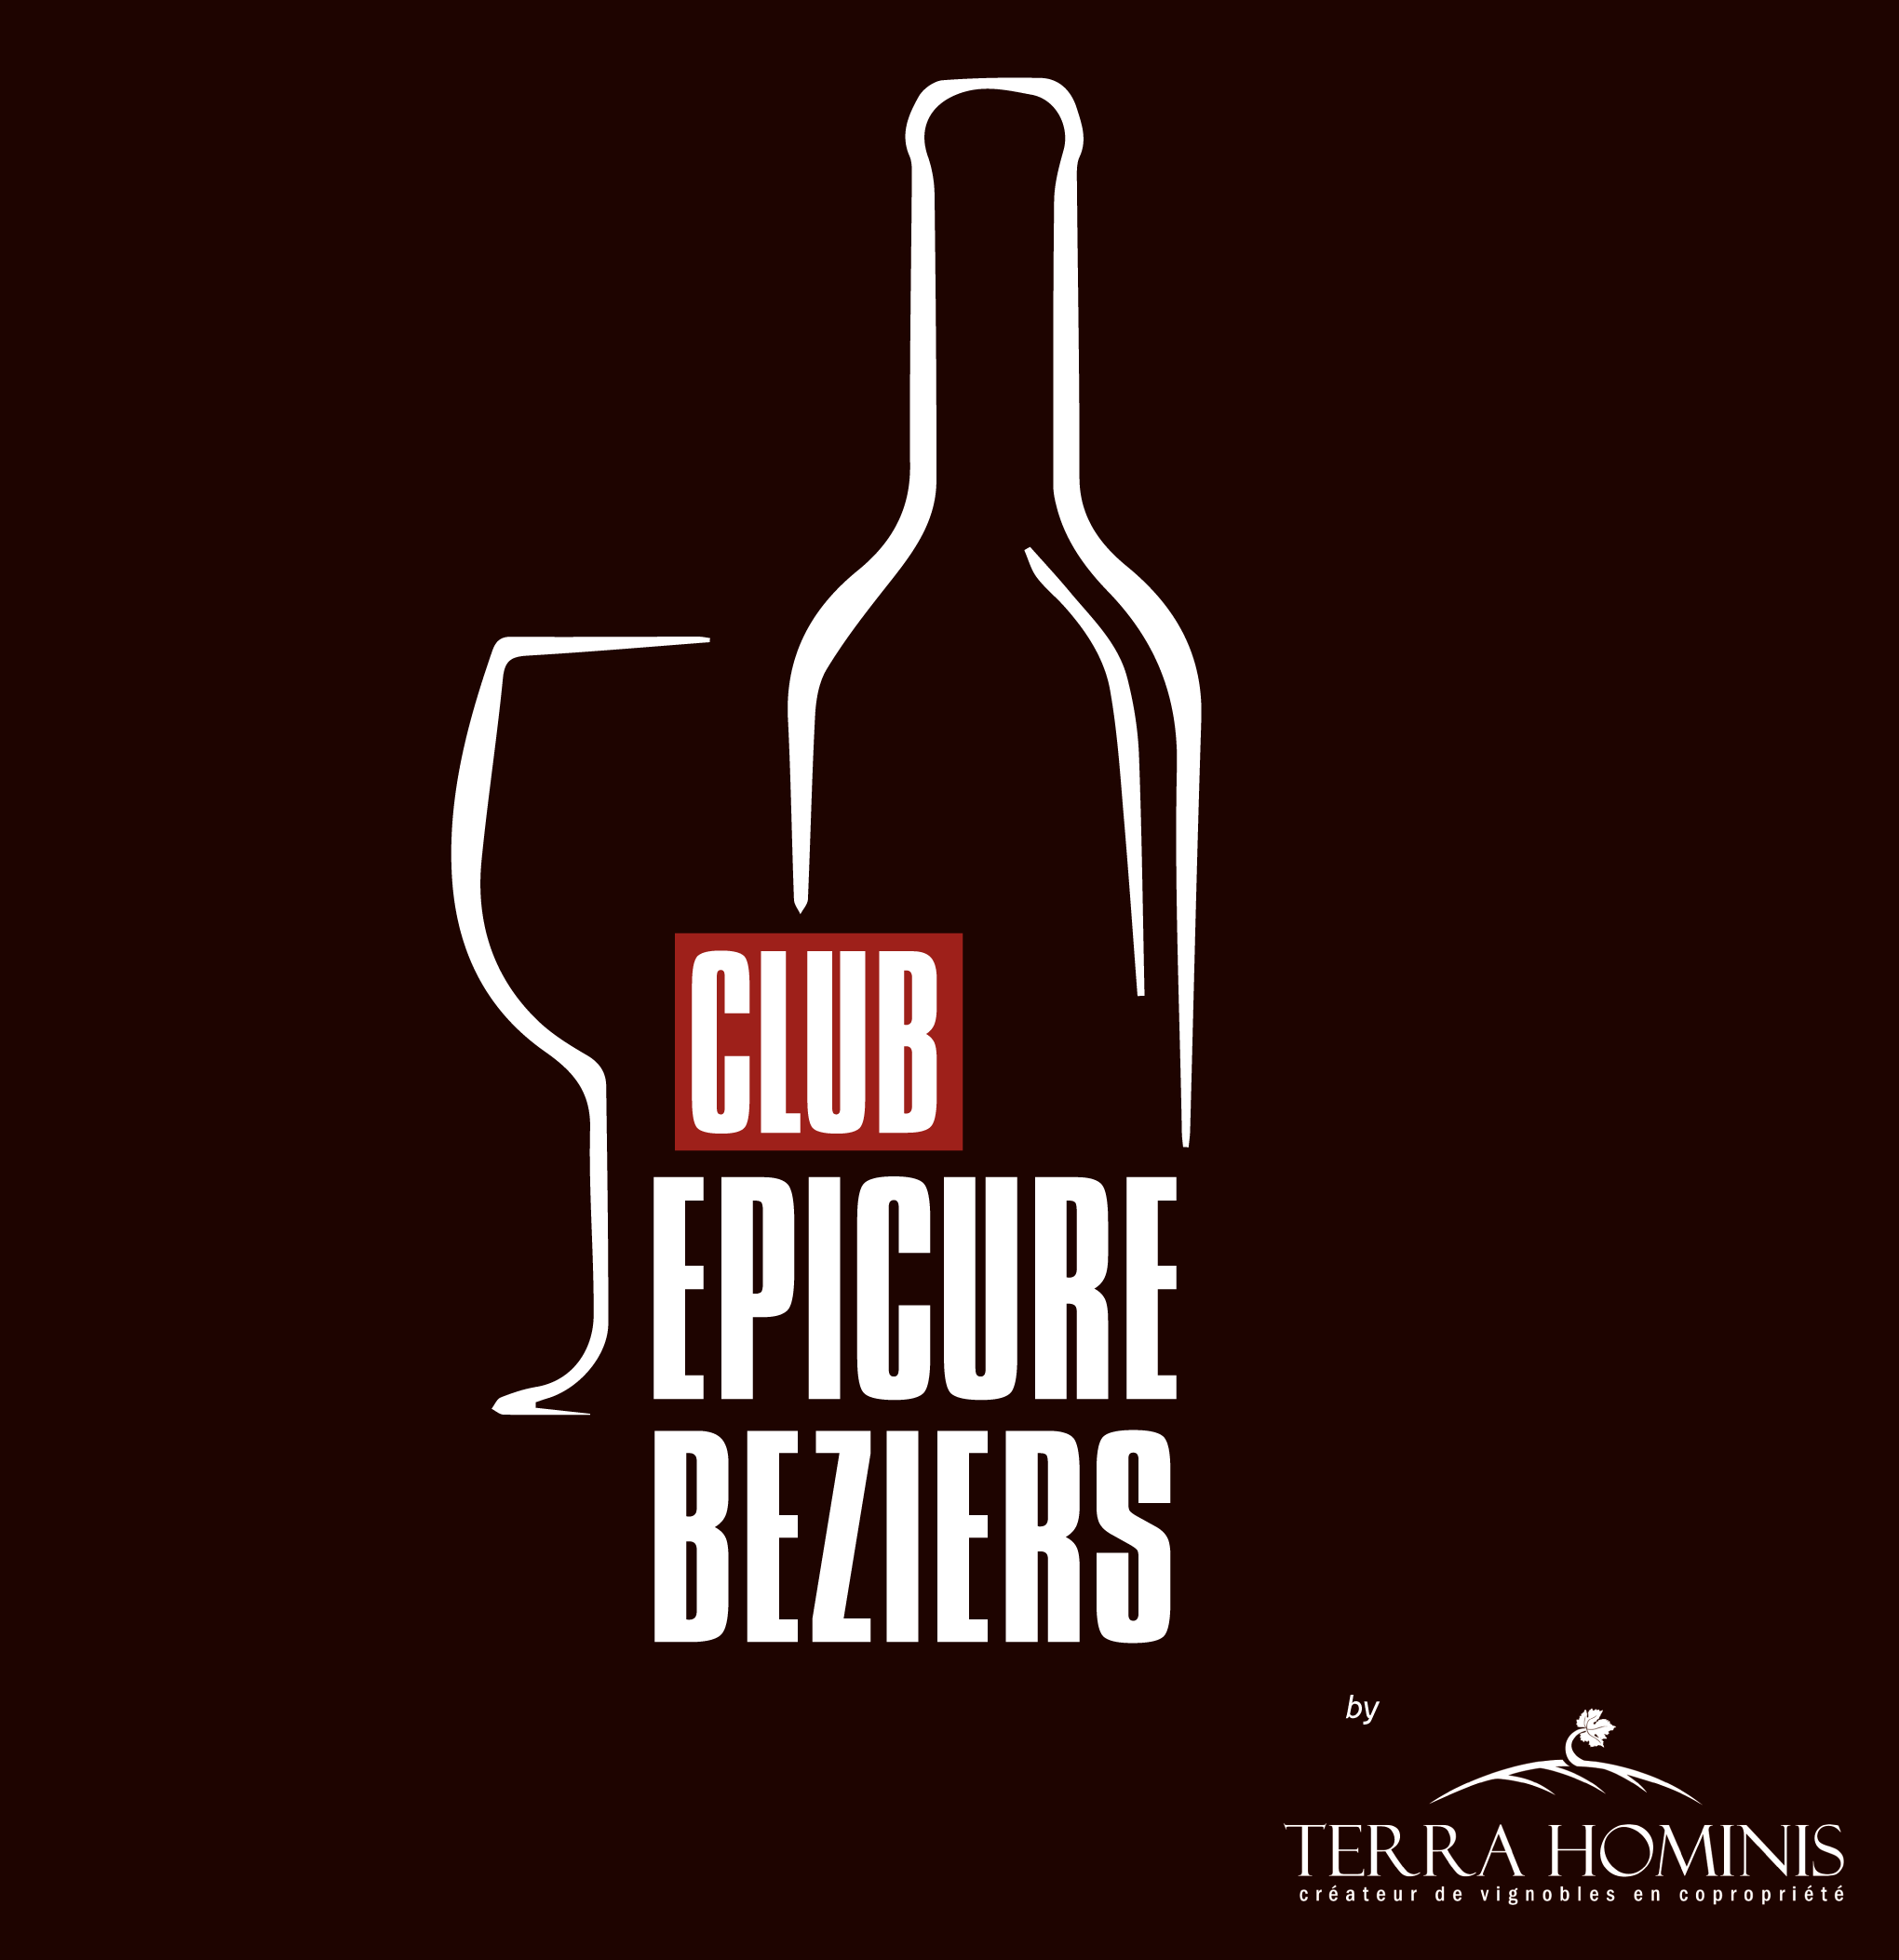 Club Epicure  Béziers by Terra Hominis